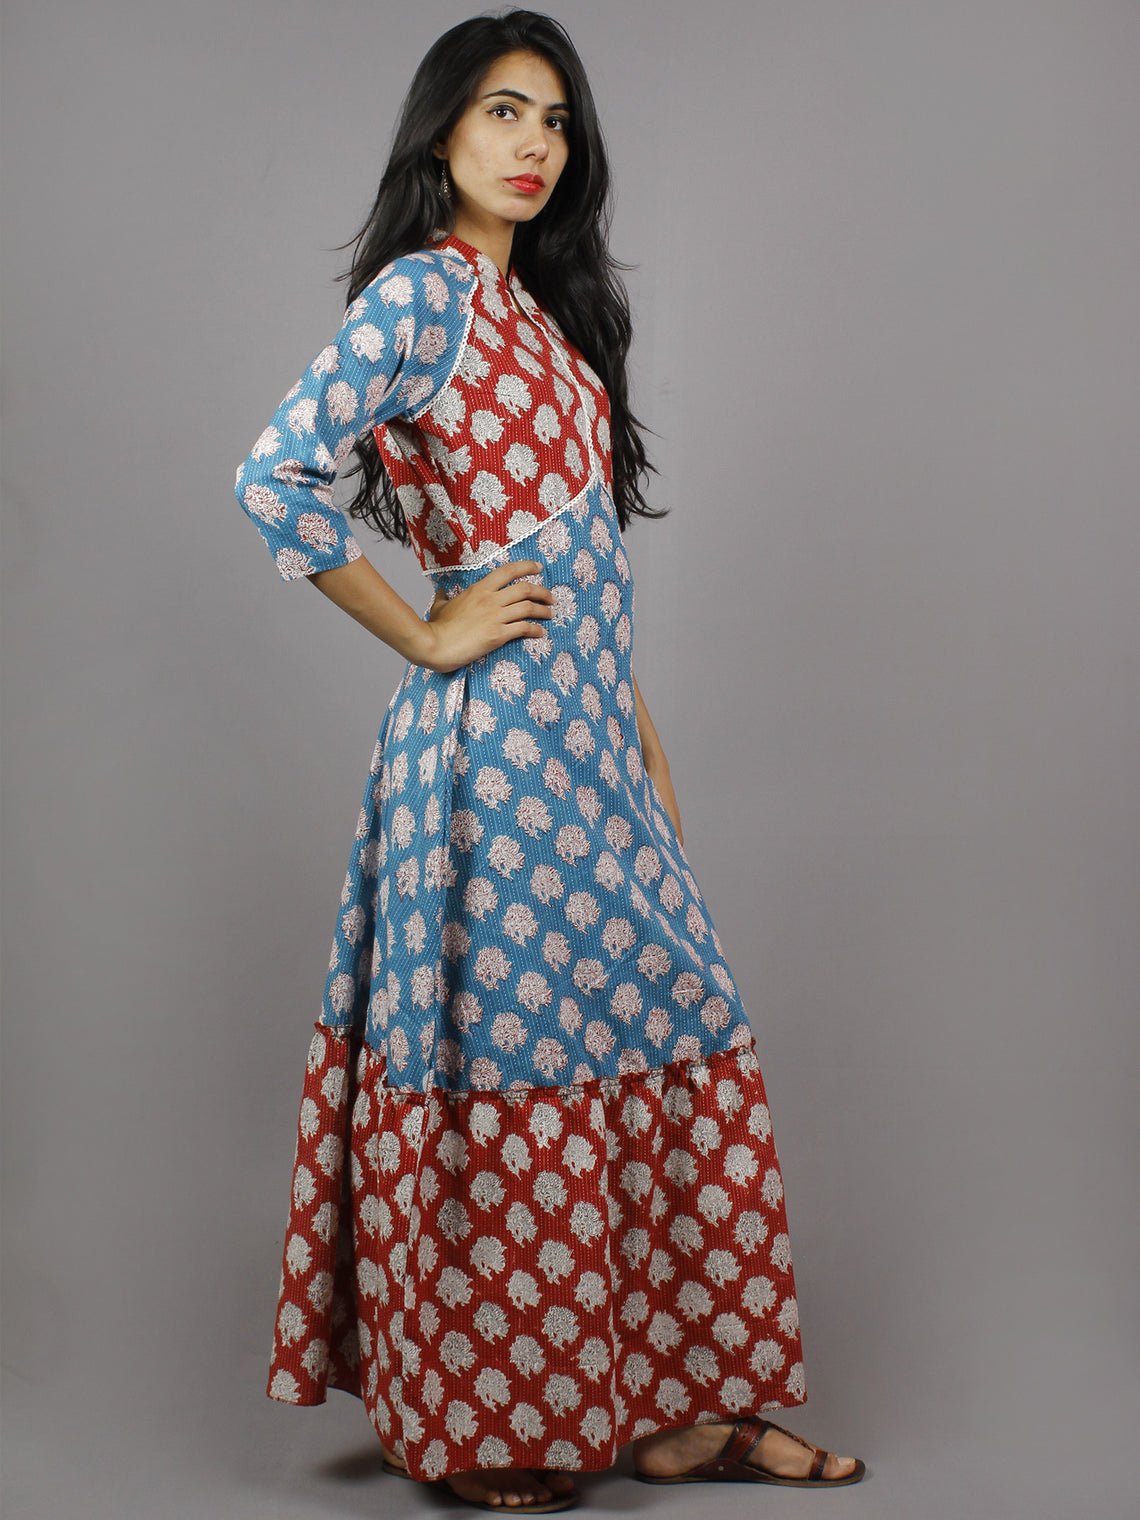 Crimson Red Cerulean Blue White Hand Block Printed Long Cotton Dress With Mandarin Collar - D4256001